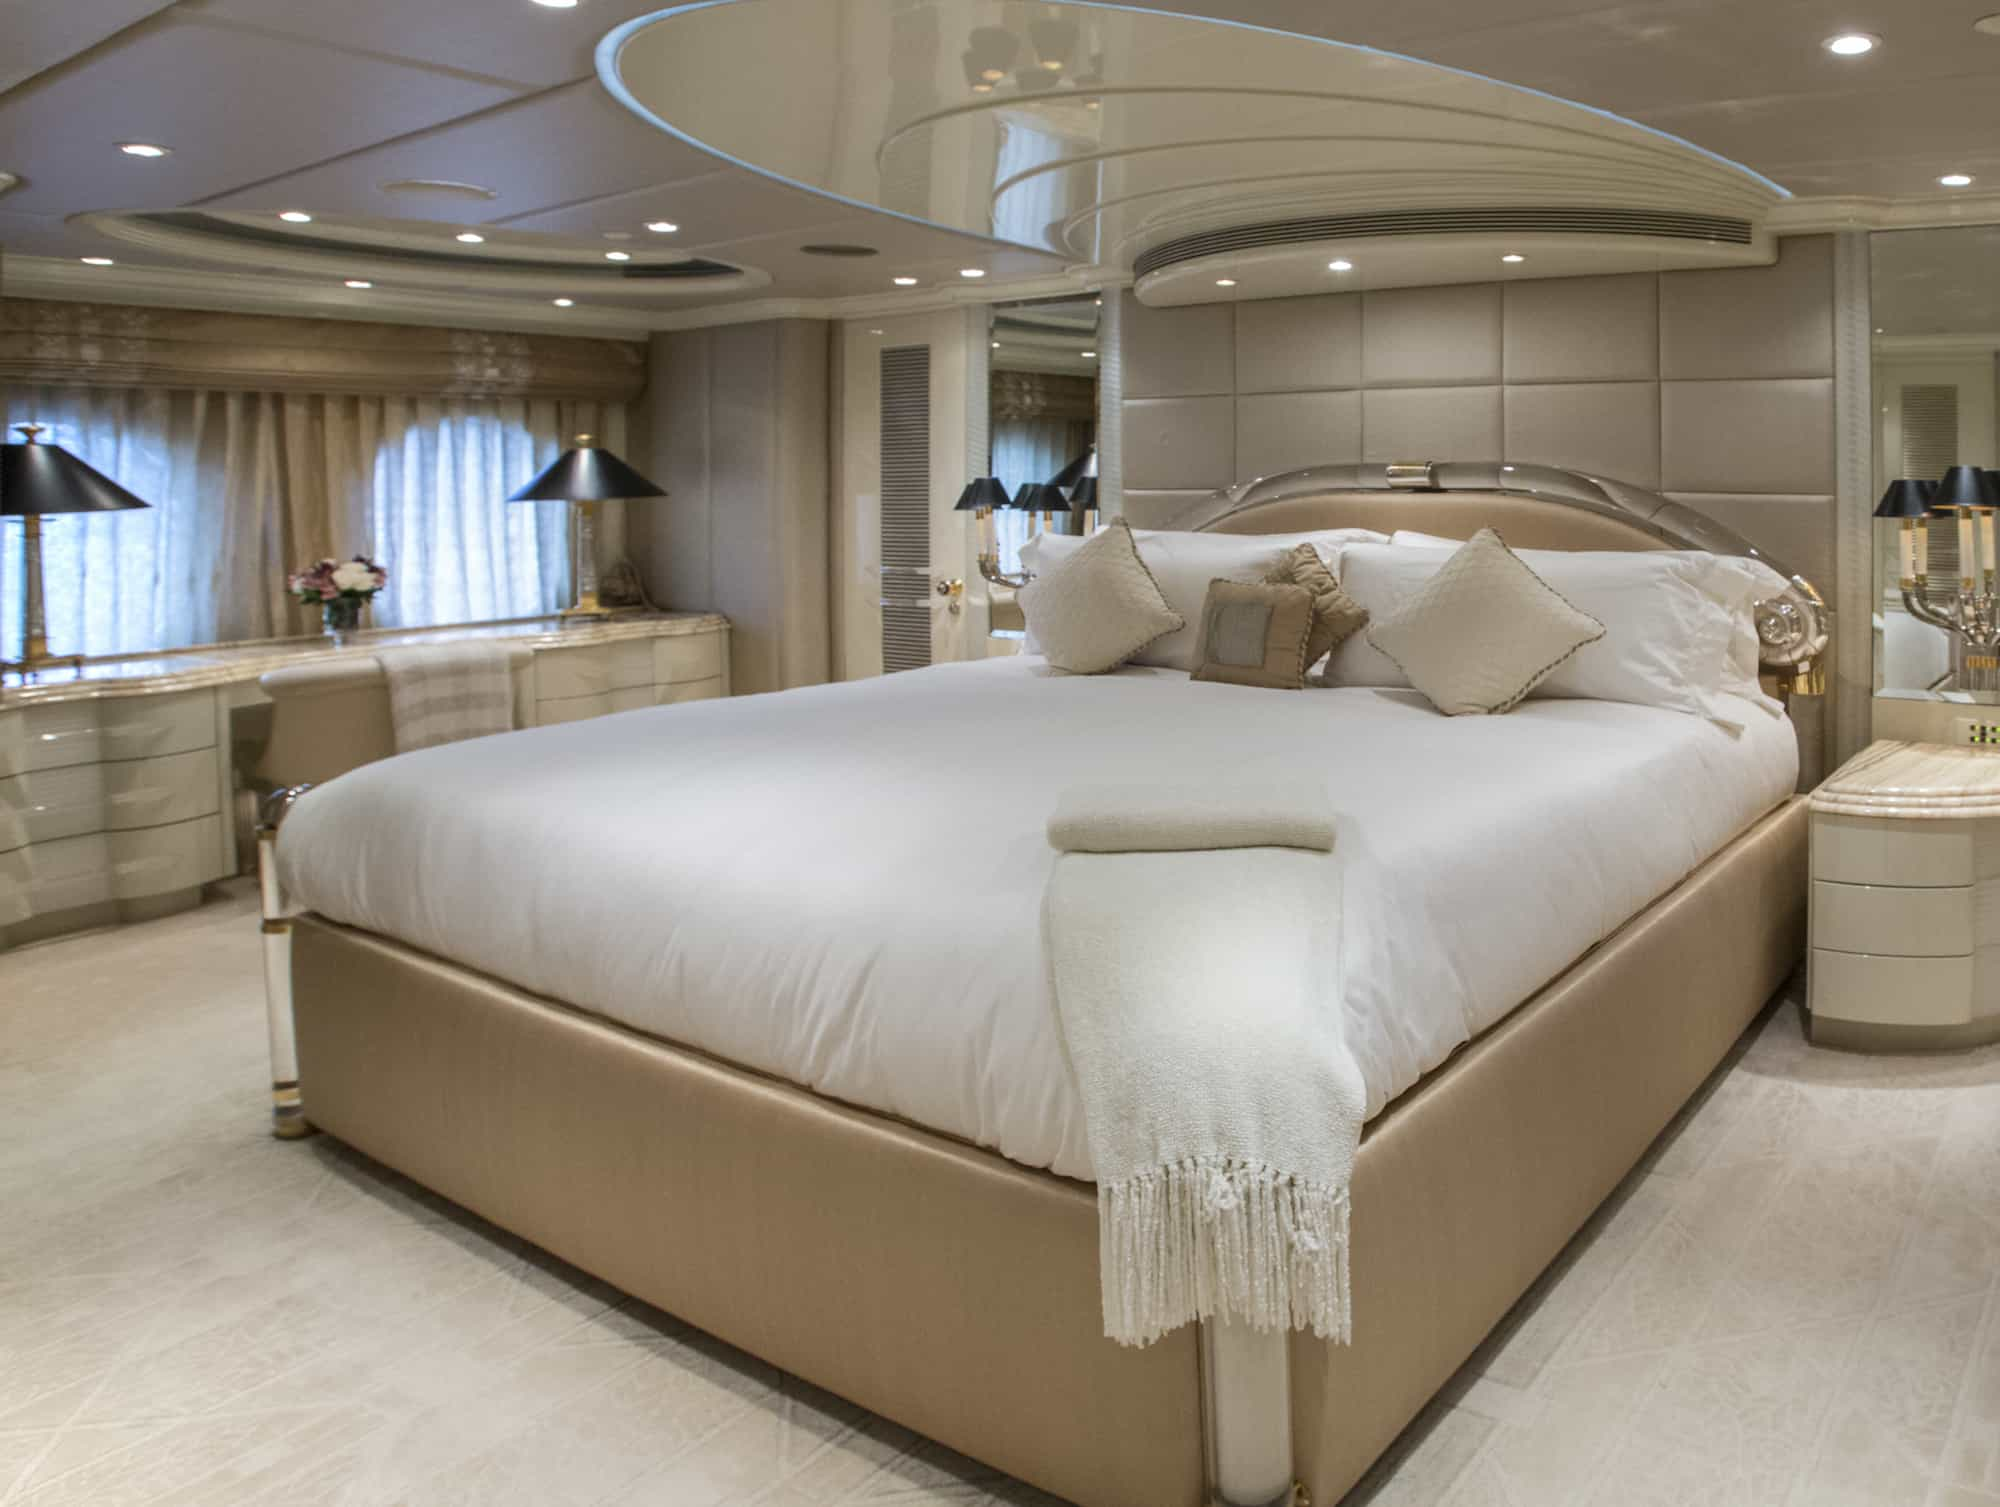 master bedroom suite onboard a luxury yacht complete with cream and white furnishings